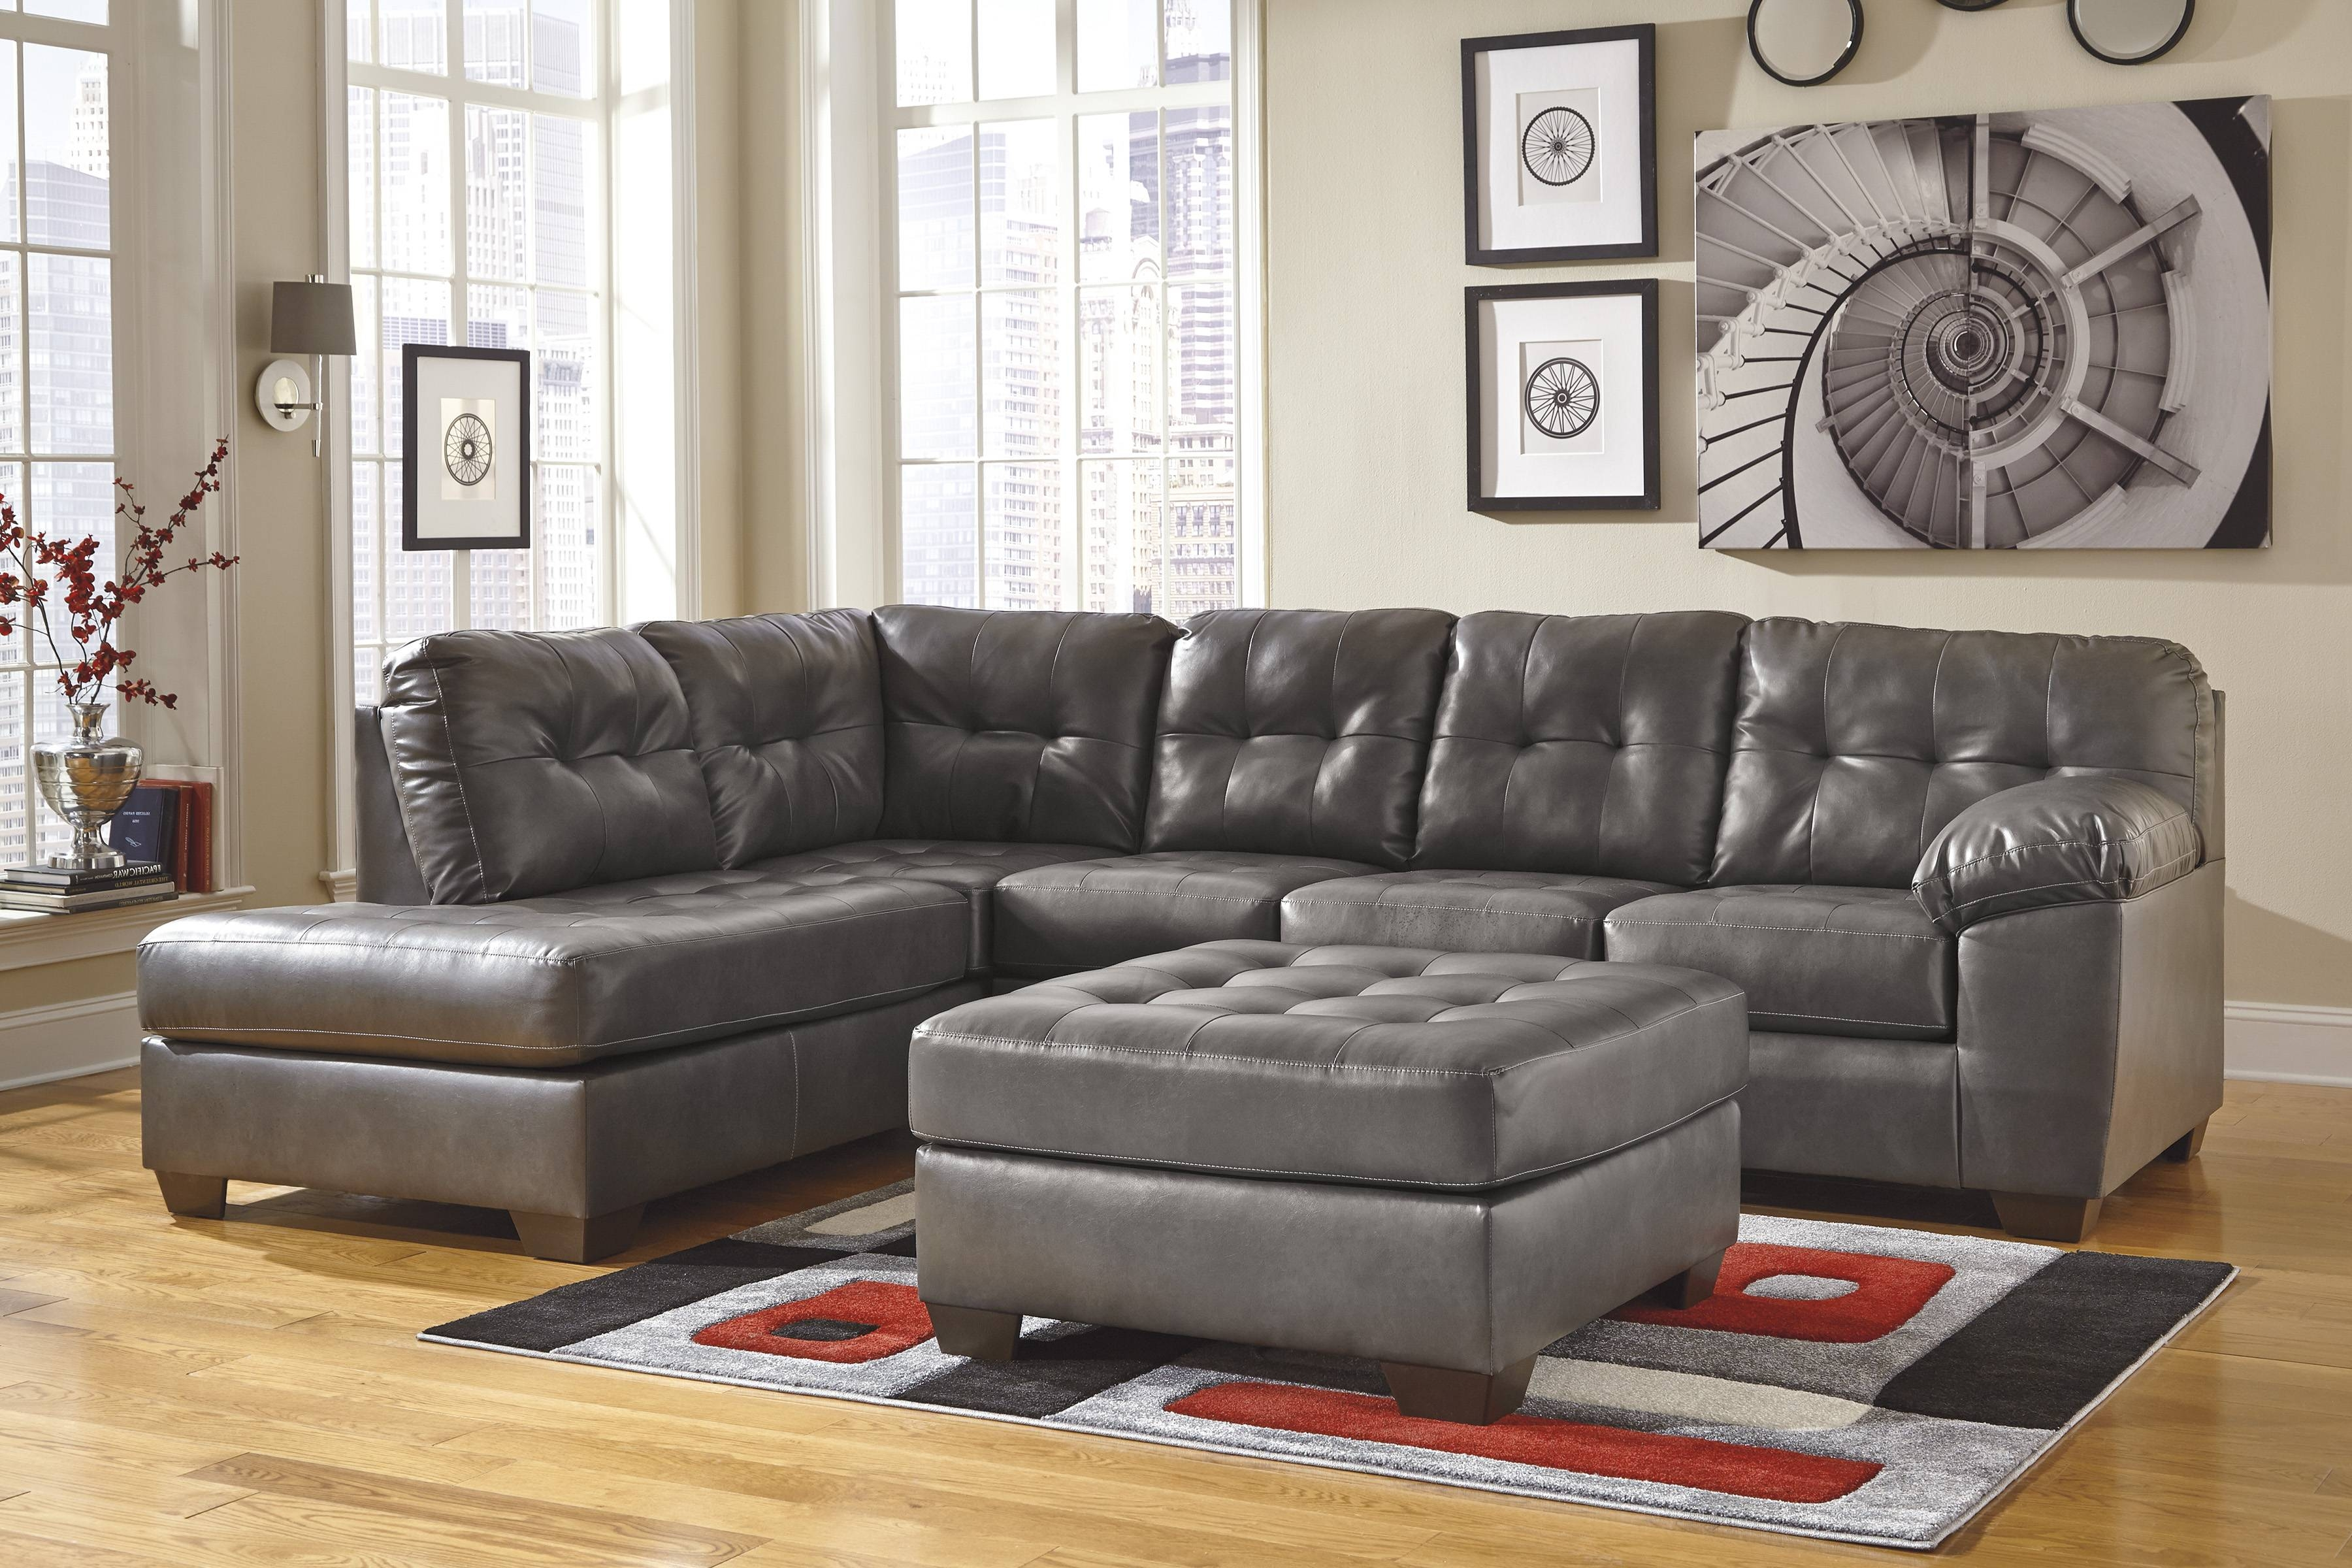 Chair & Sofa: Faux Leather Couch | Ashley Furniture Sectional inside Ashley Faux Leather Sectional Sofas (Image 3 of 15)